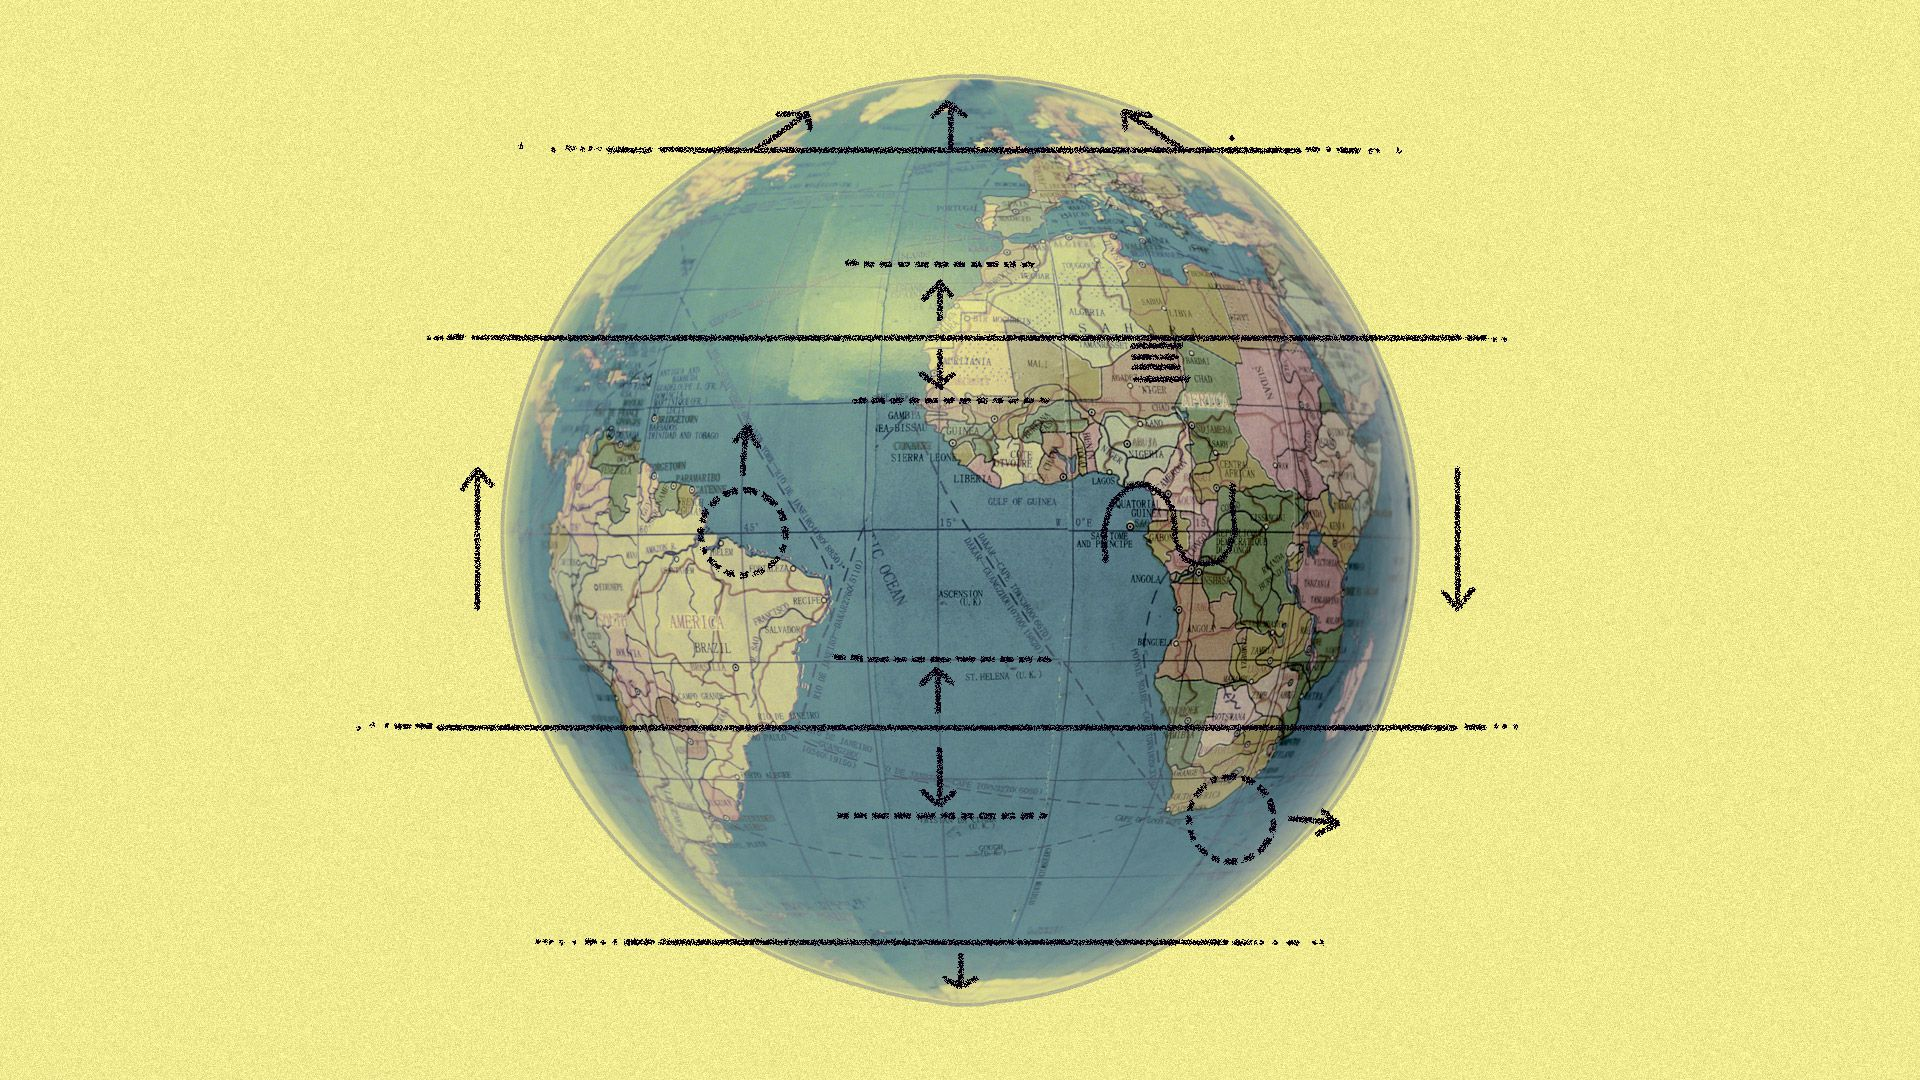 Illustration of globe with climate lines drawn around it